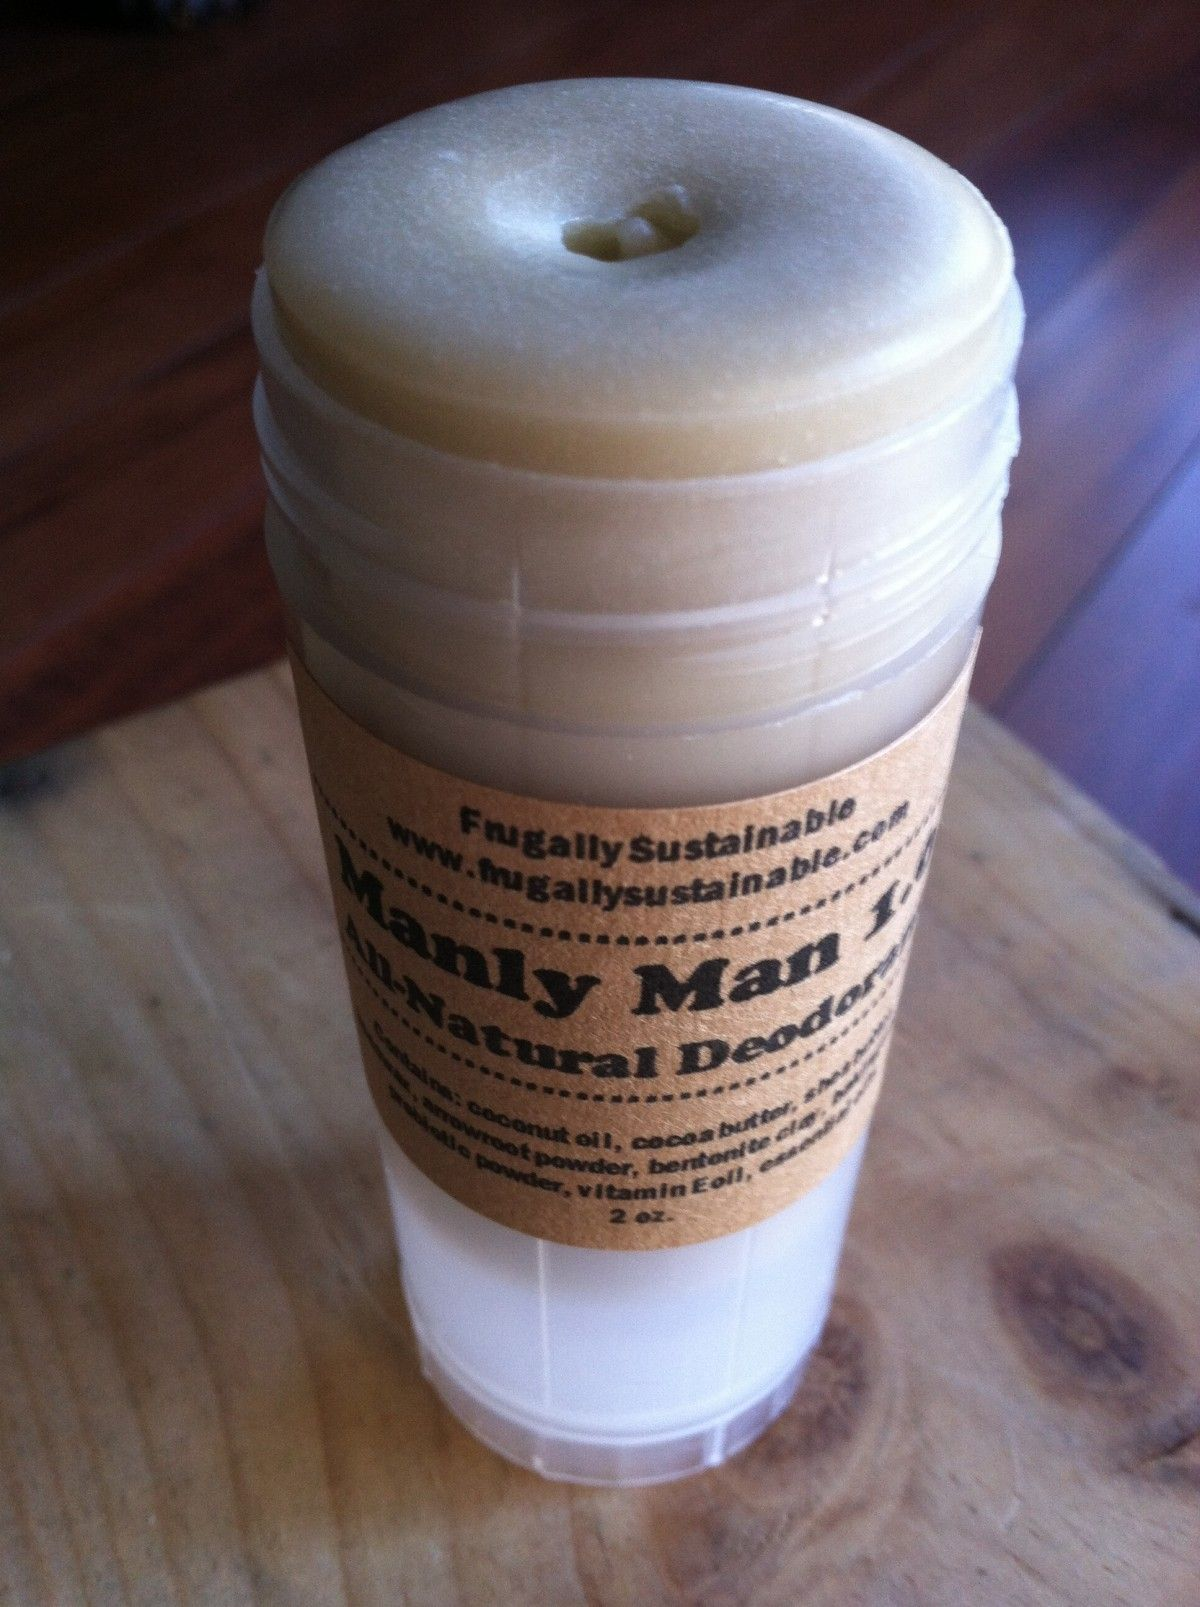 How to Make a Homemade, All Natural Deodorant for Men | Frugally Sustainable